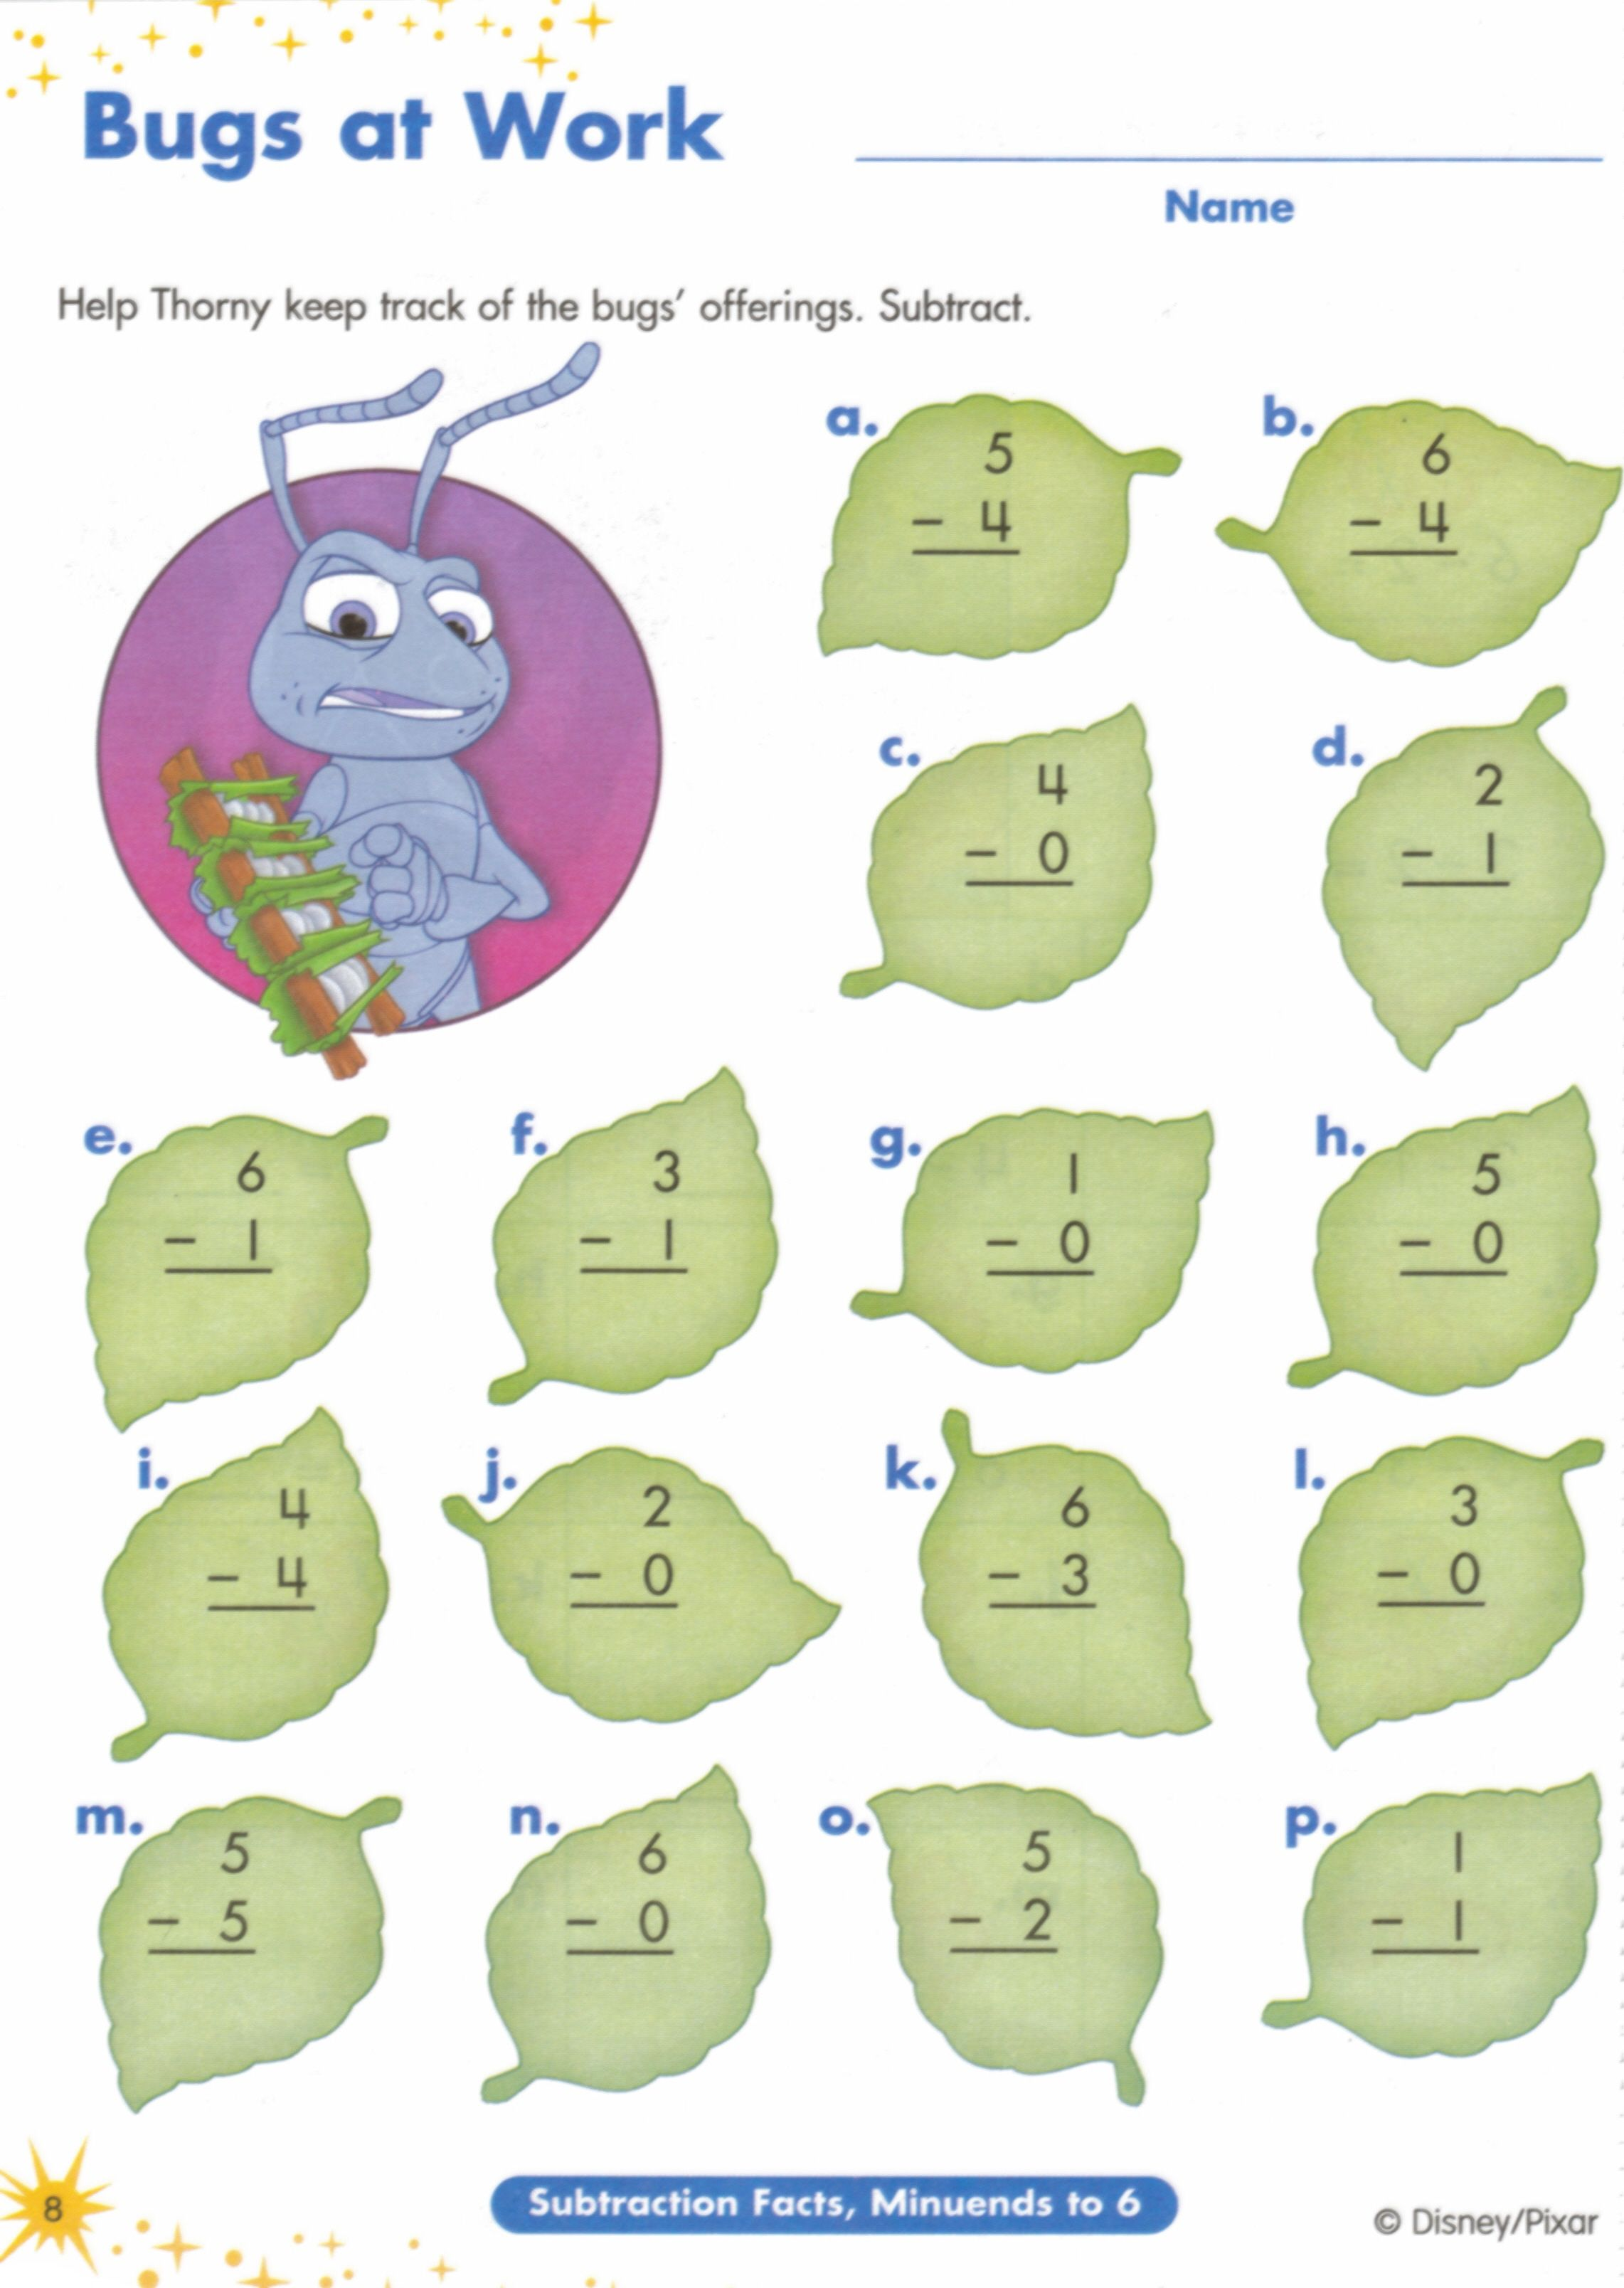 Proatmealus  Fascinating  Images About Worksheets On Pinterest  Fun Facts For Kids  With Fascinating  Images About Worksheets On Pinterest  Fun Facts For Kids Earth Day Worksheets And Jungles With Lovely Havefunteaching Com Math Worksheets Also Pre K Adding Worksheets In Addition Reading Comprehension Fairy Tales Worksheets And Kindergarten Ocean Worksheets As Well As Fire Safety Merit Badge Worksheet Additionally Reading Comprehension Worksheets Grade  Free From Pinterestcom With Proatmealus  Fascinating  Images About Worksheets On Pinterest  Fun Facts For Kids  With Lovely  Images About Worksheets On Pinterest  Fun Facts For Kids Earth Day Worksheets And Jungles And Fascinating Havefunteaching Com Math Worksheets Also Pre K Adding Worksheets In Addition Reading Comprehension Fairy Tales Worksheets From Pinterestcom